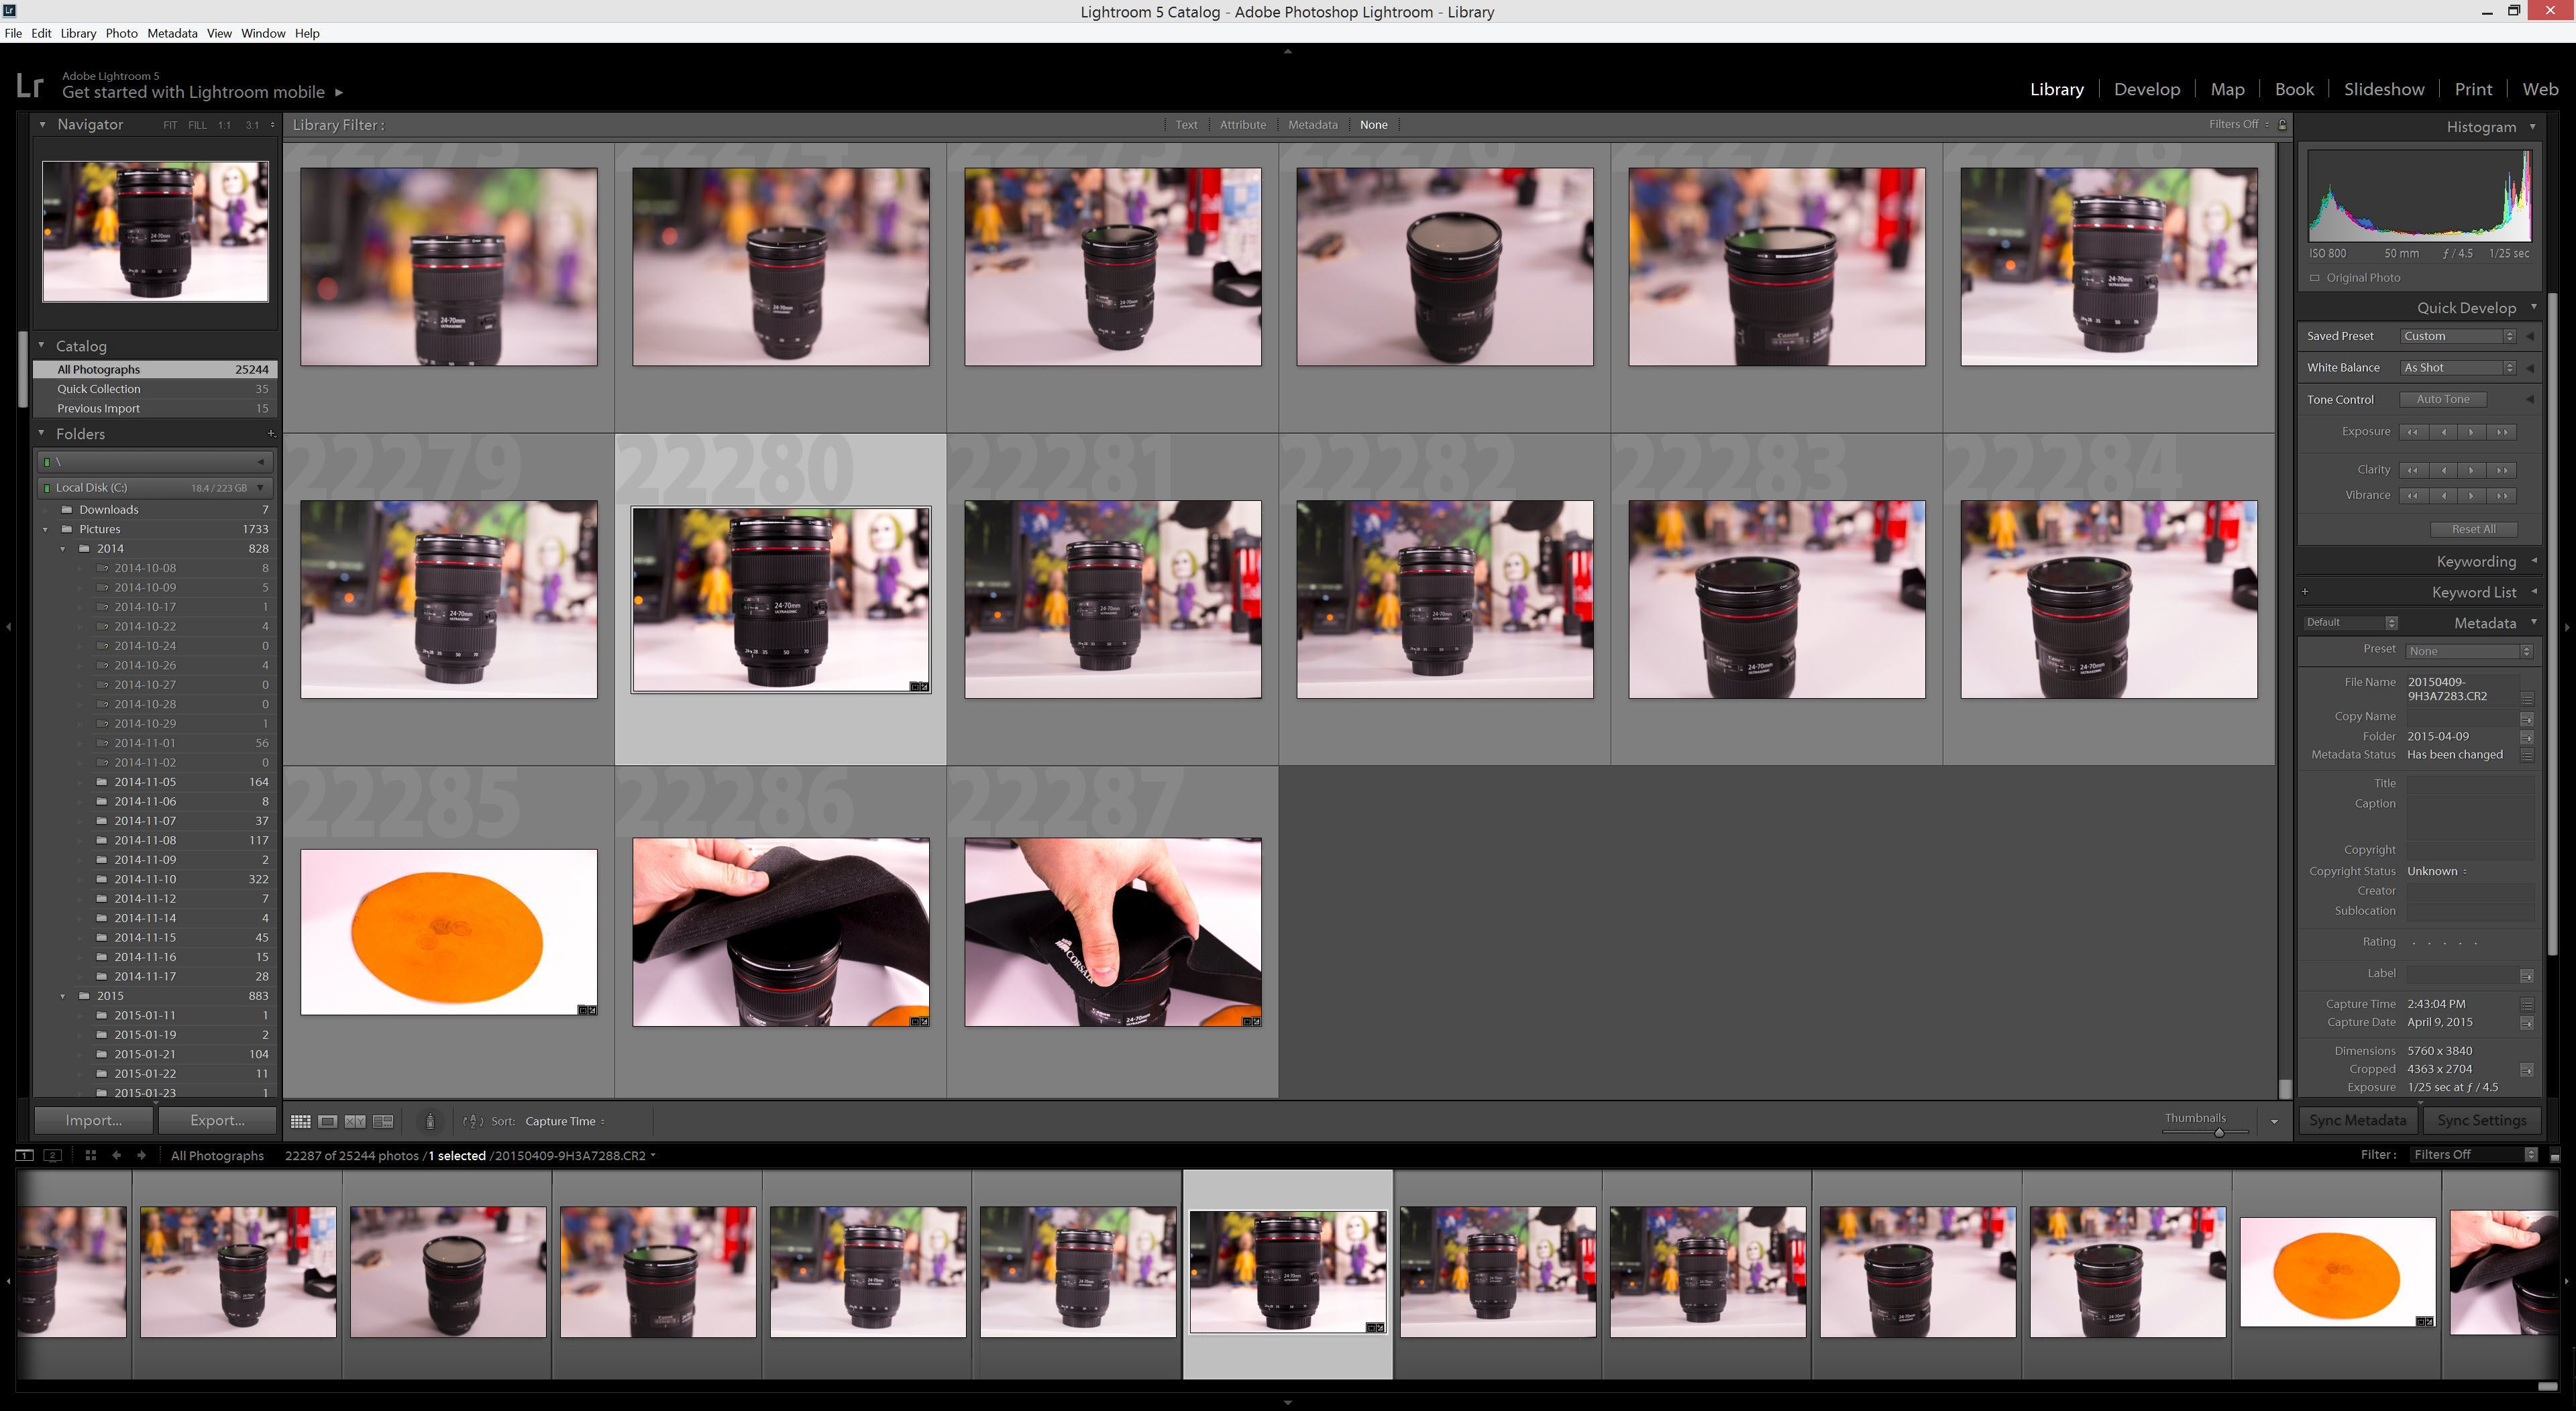 Lightroom 5-7 Library Tab